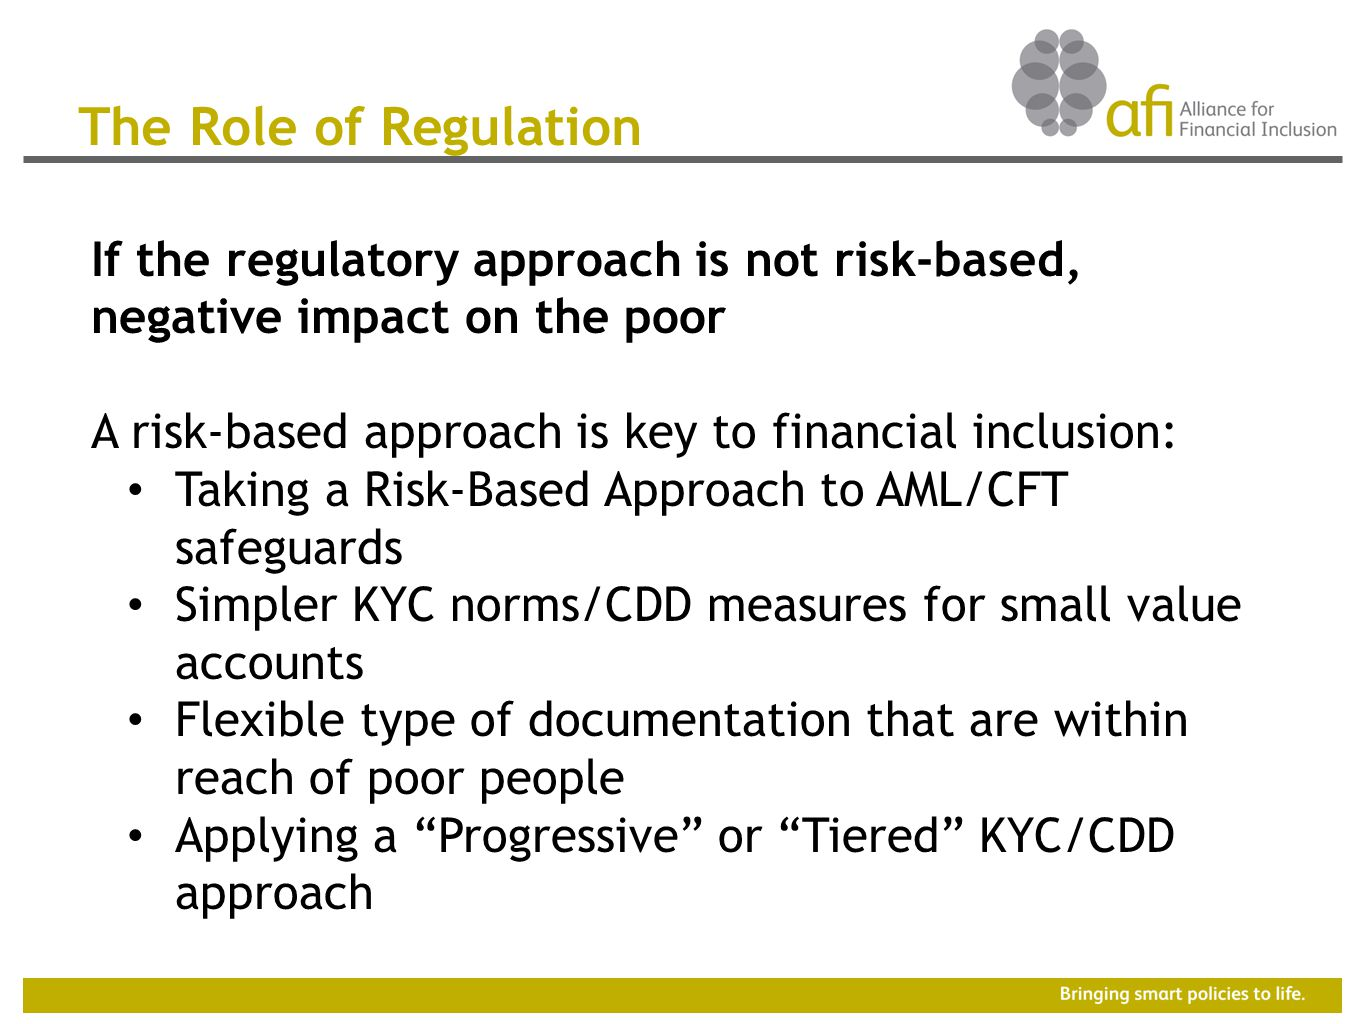 The Role of Regulation If the regulatory approach is not risk-based, negative impact on the poor A risk-based approach is key to financial inclusion: Taking a Risk-Based Approach to AML/CFT safeguards Simpler KYC norms/CDD measures for small value accounts Flexible type of documentation that are within reach of poor people Applying a Progressive or Tiered KYC/CDD approach